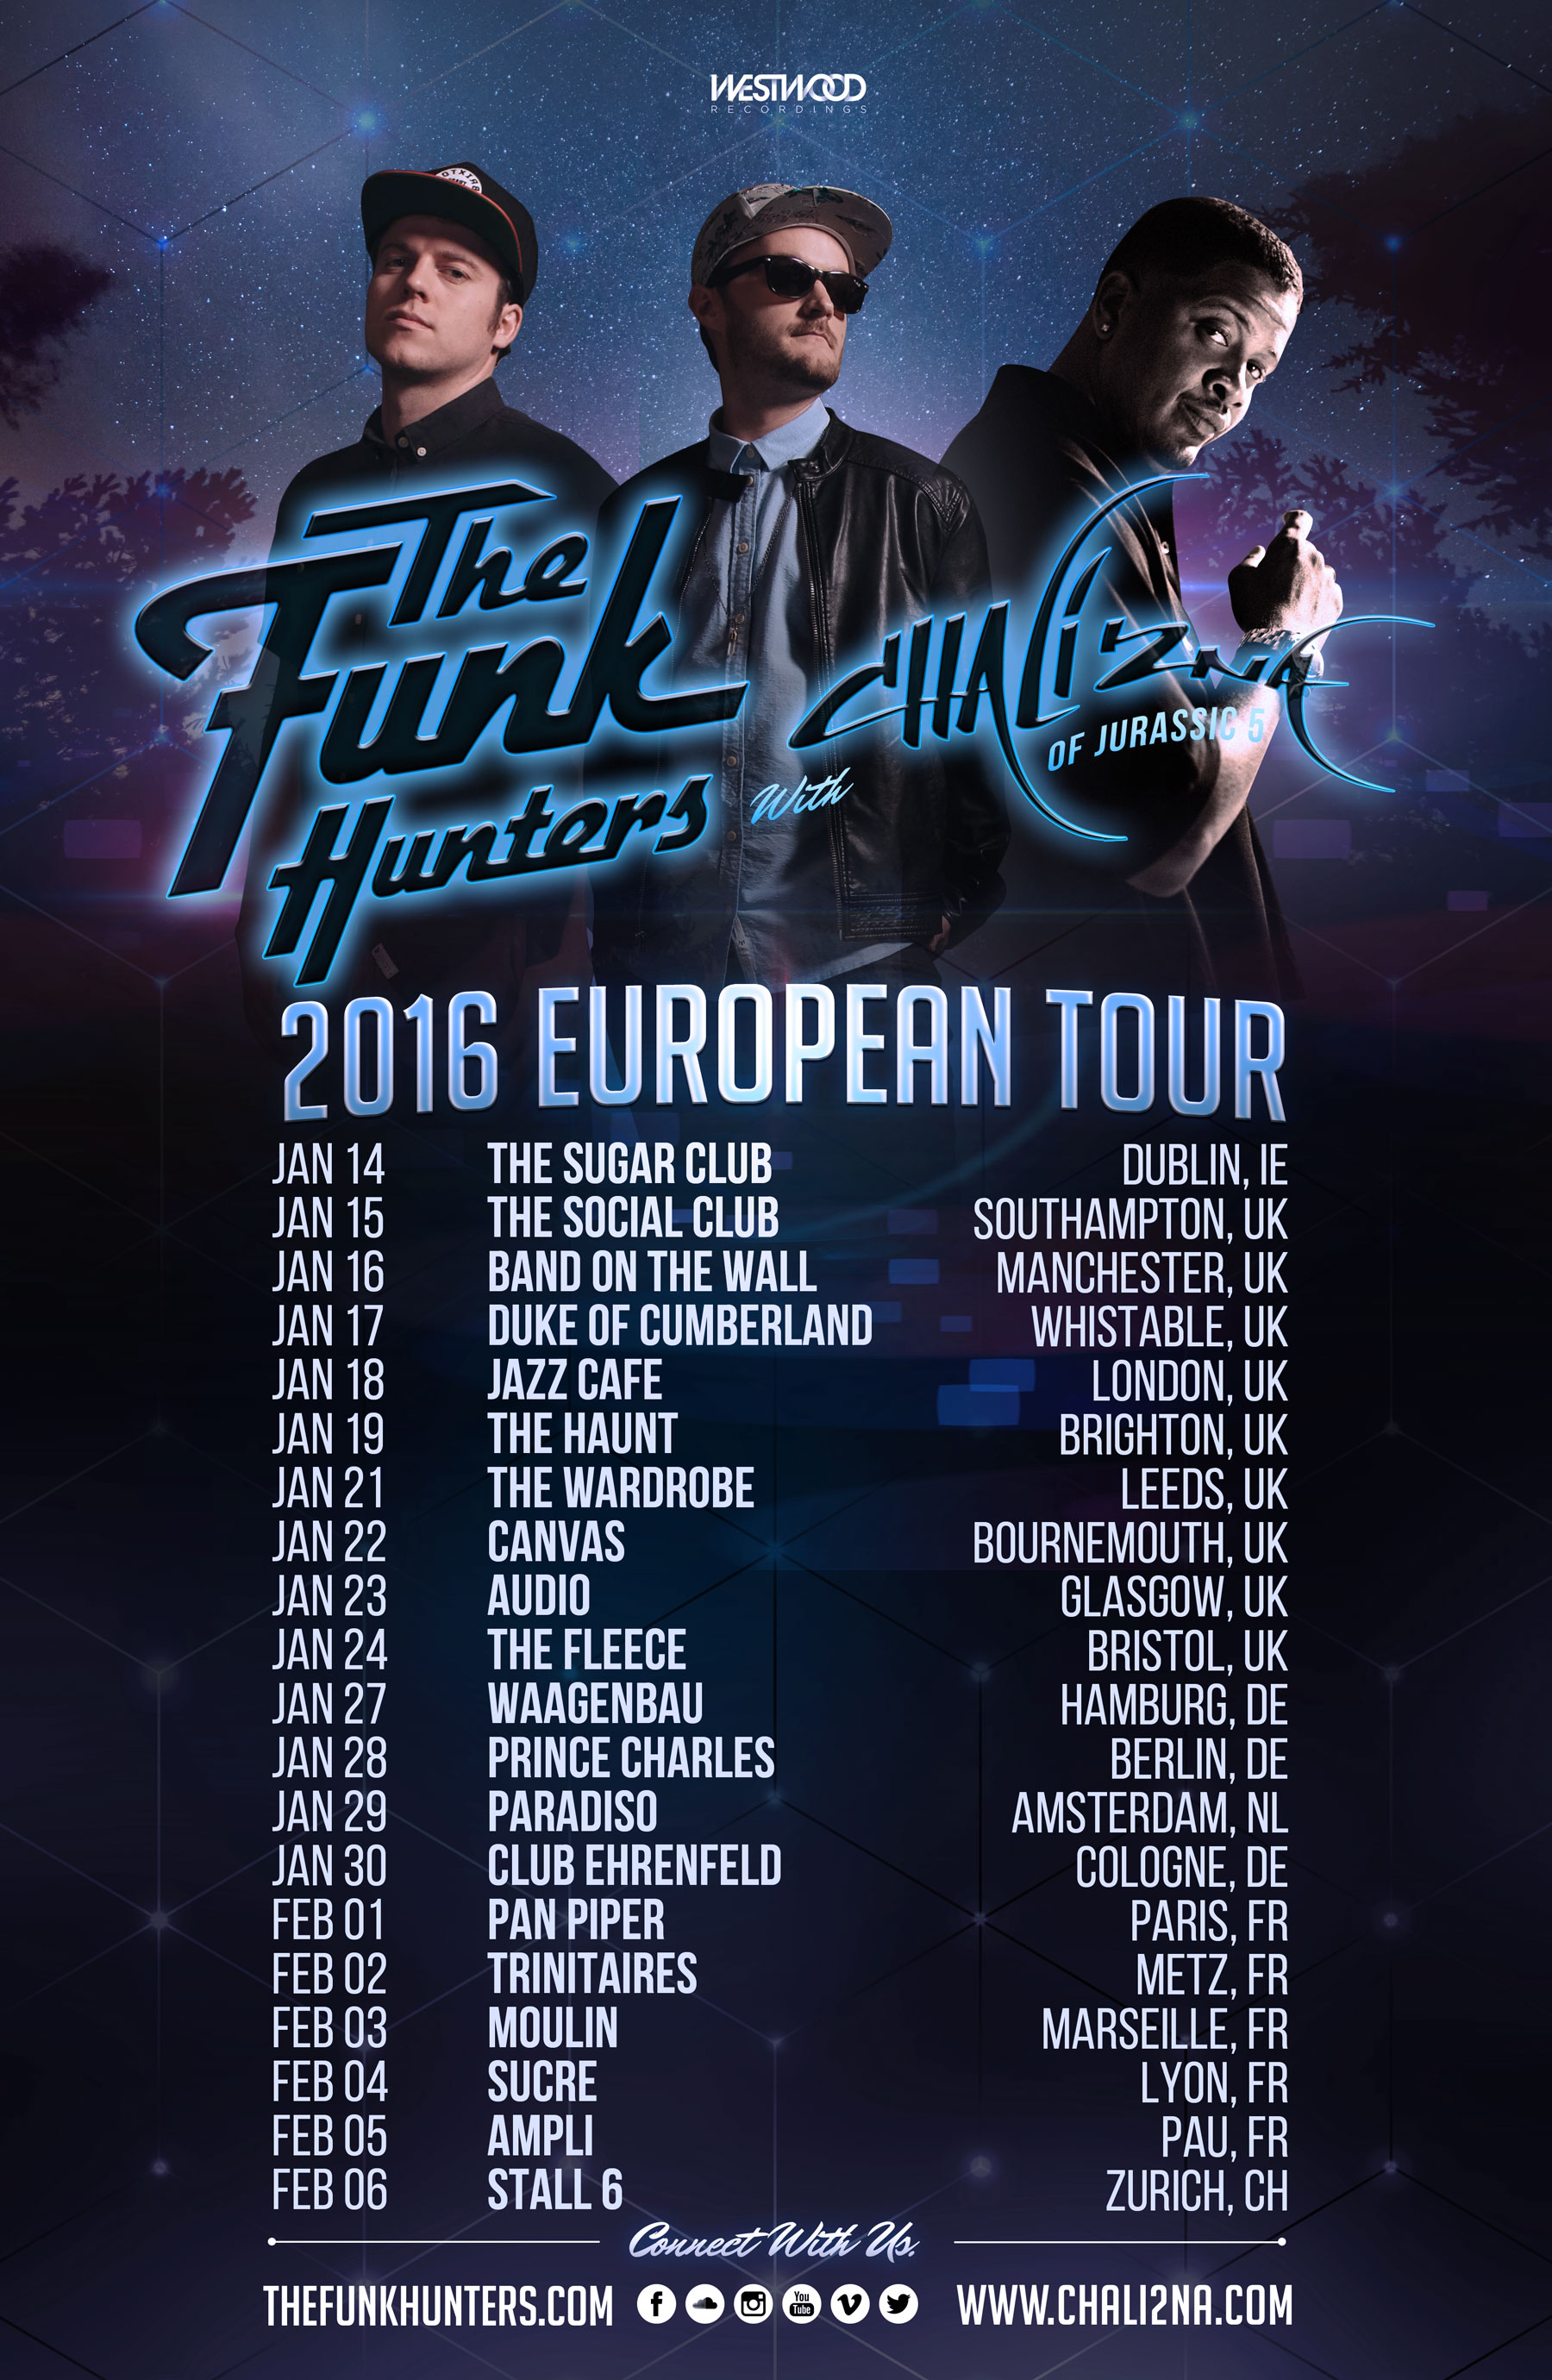 2016 Europe Tour Poster - The Funk Hunters & Chali 2na